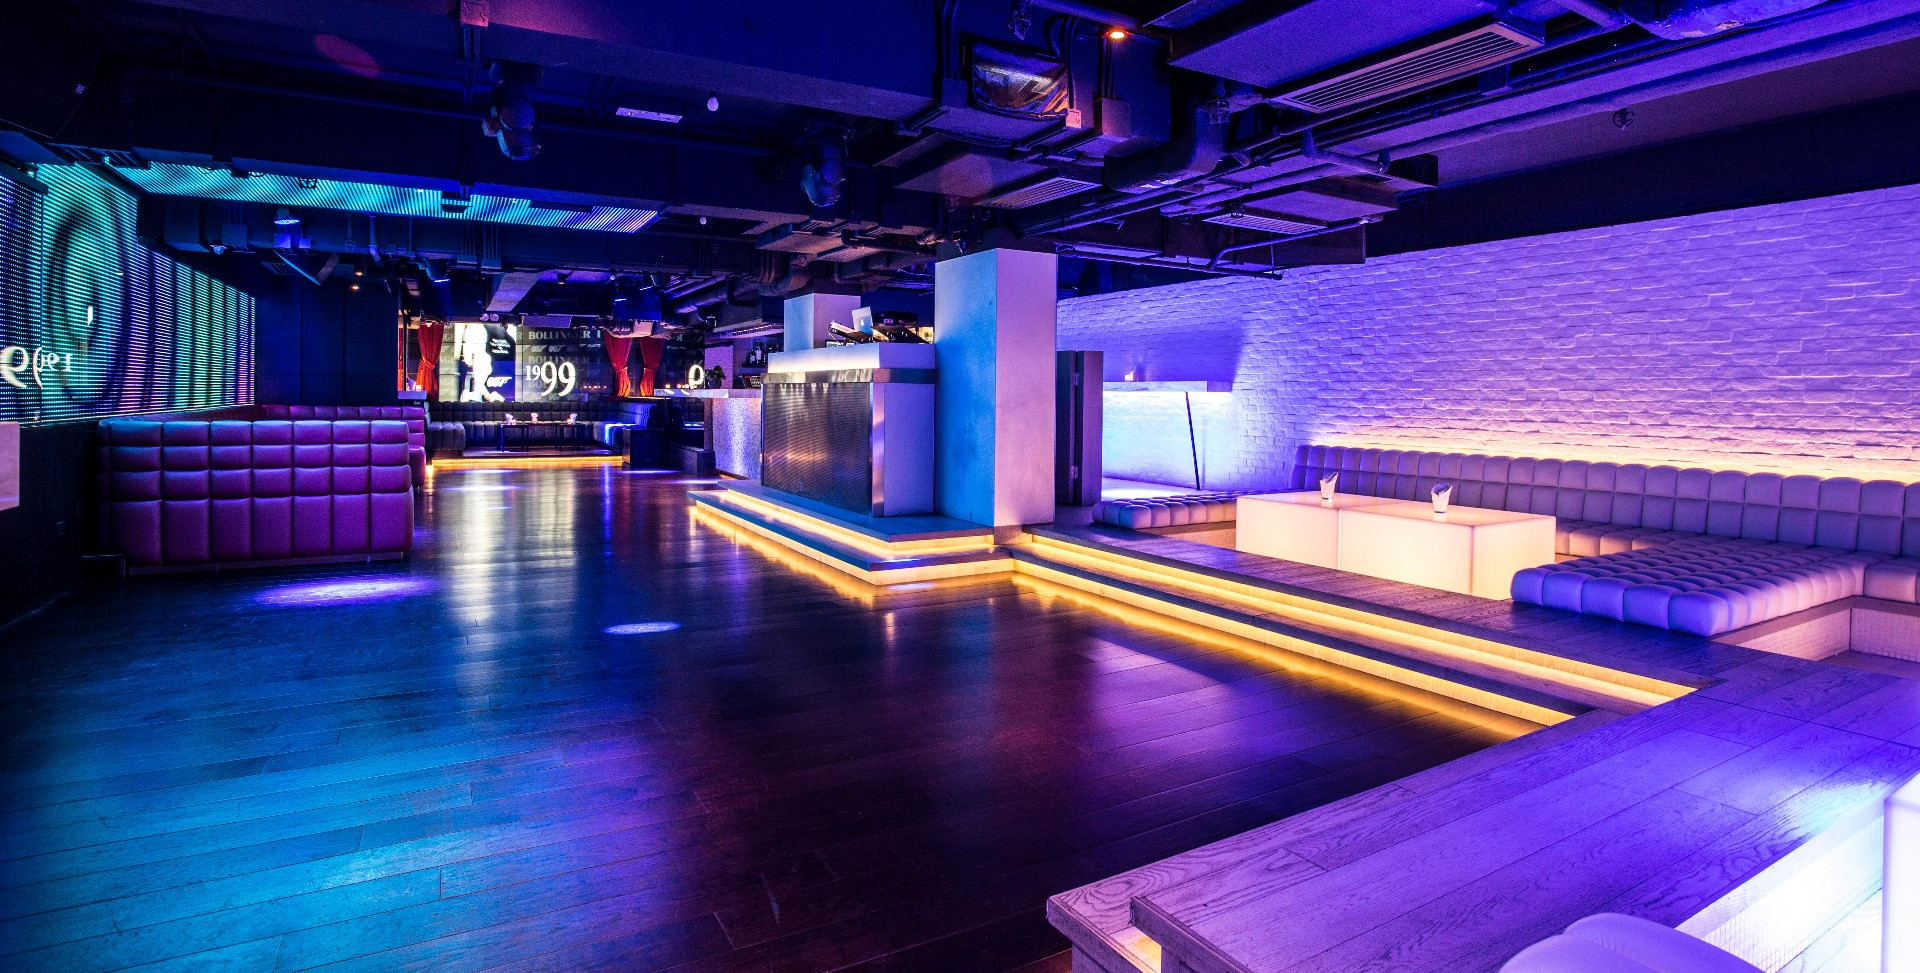 dynaled-club-disco-lighting-examples-23.